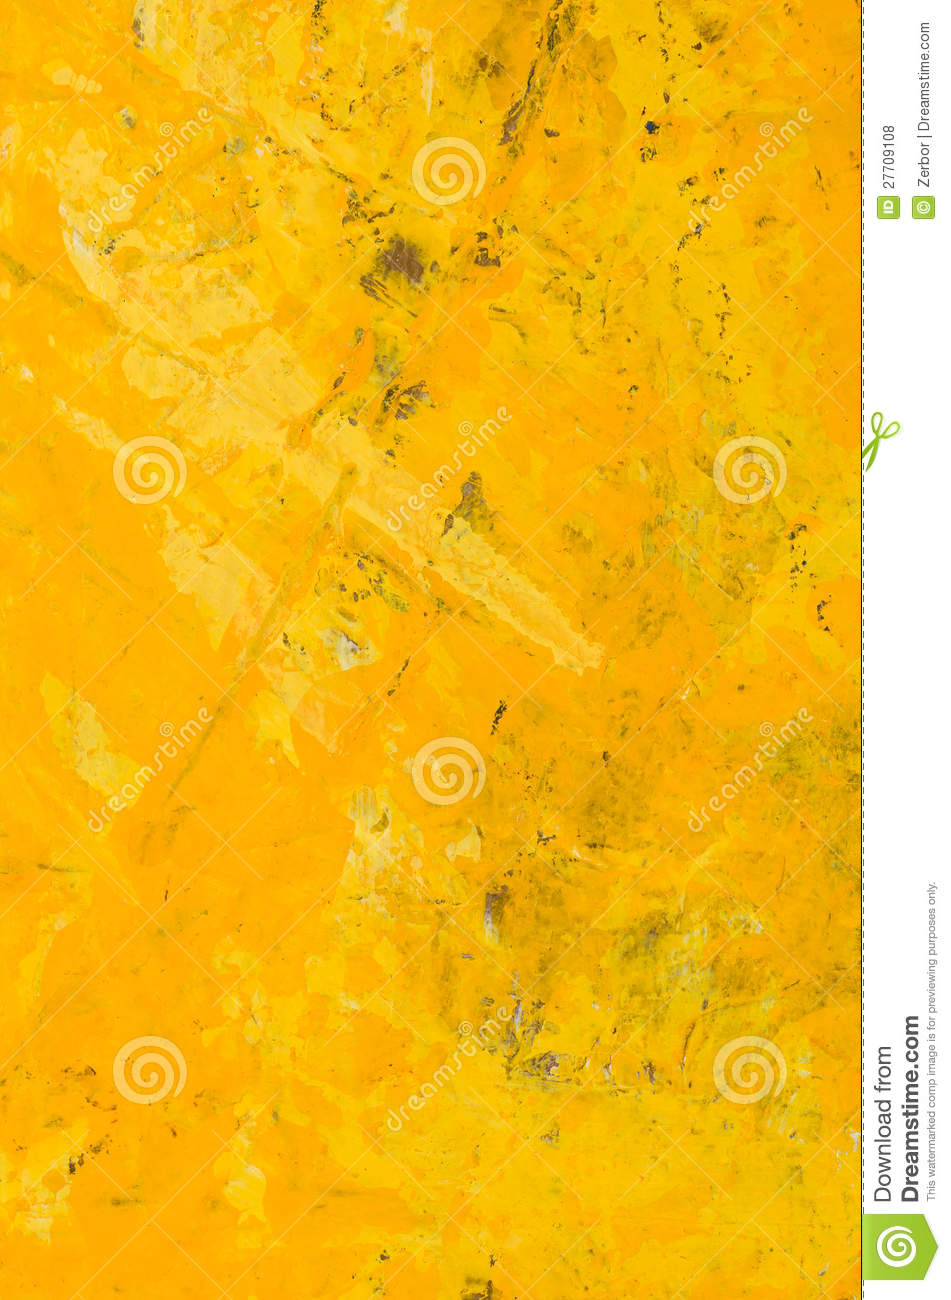 Yellow Abstract Acrylic Painting Royalty Free Stock Photos ...Yellow Abstract Painting